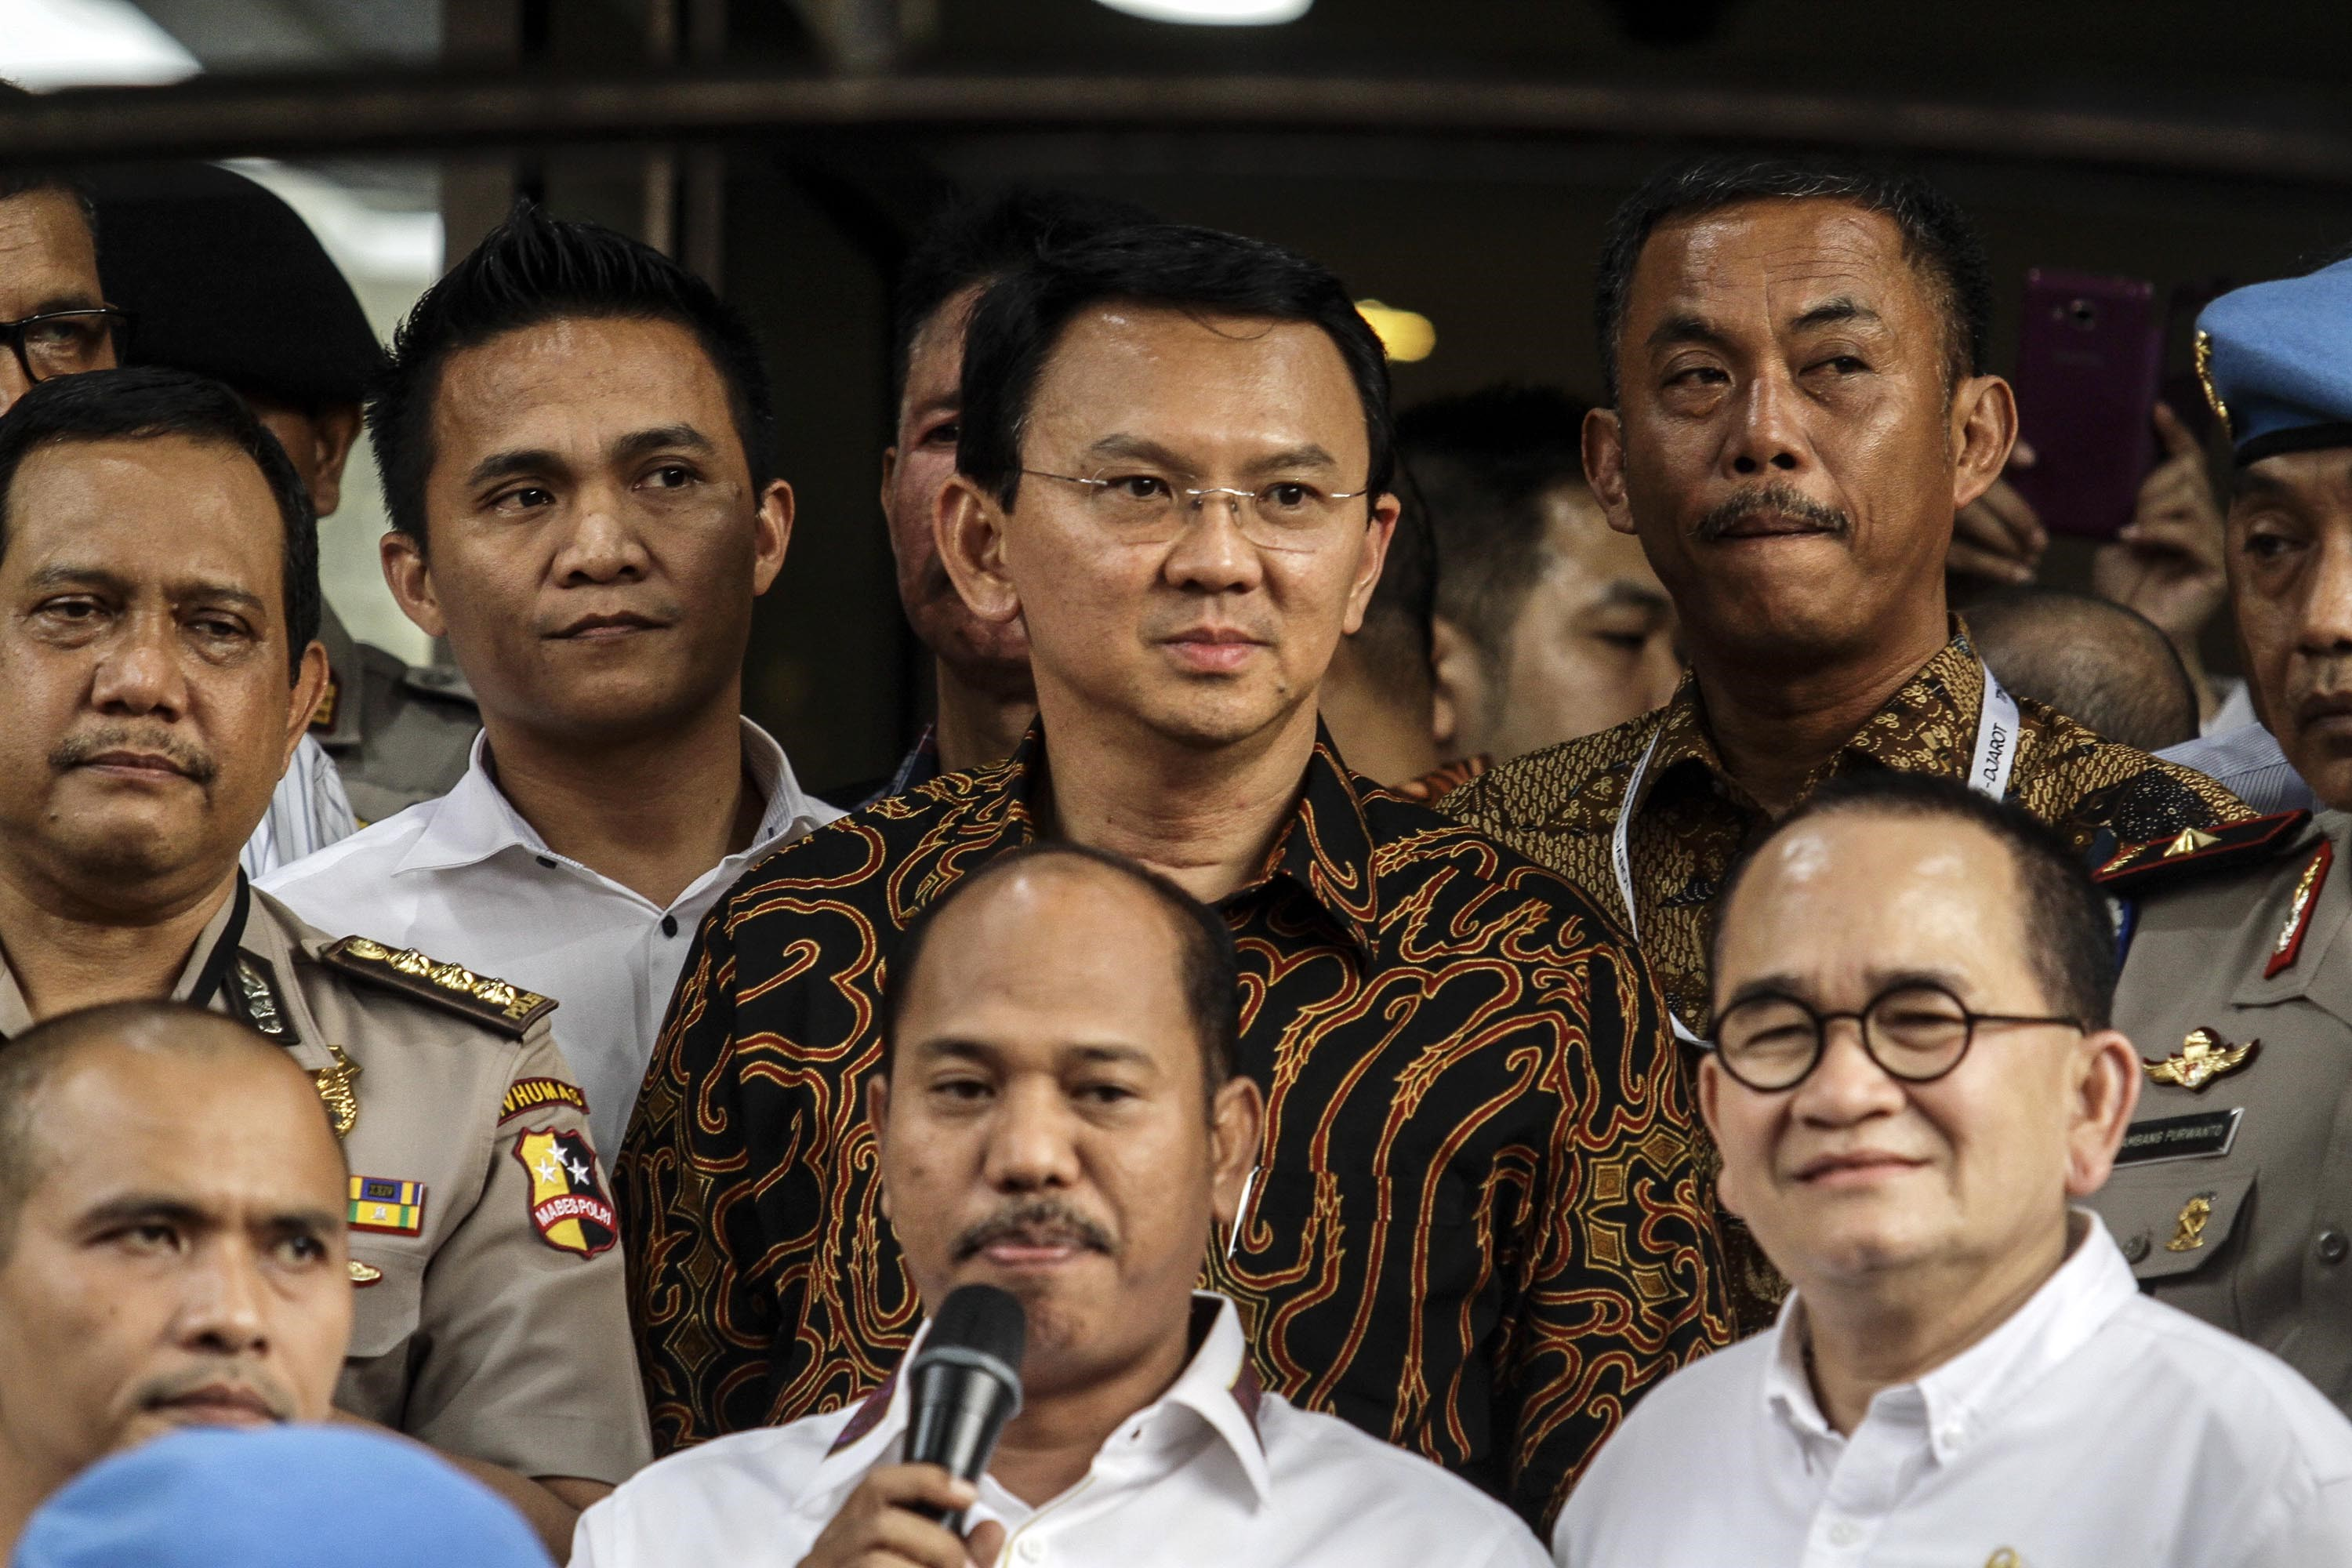 Jakarta's Governor Basuki Tjahaja Purnama, center, in a batik shirt, faces journalists after investigation by the police at the police headquarters in Jakarta on Nov. 7, 2016